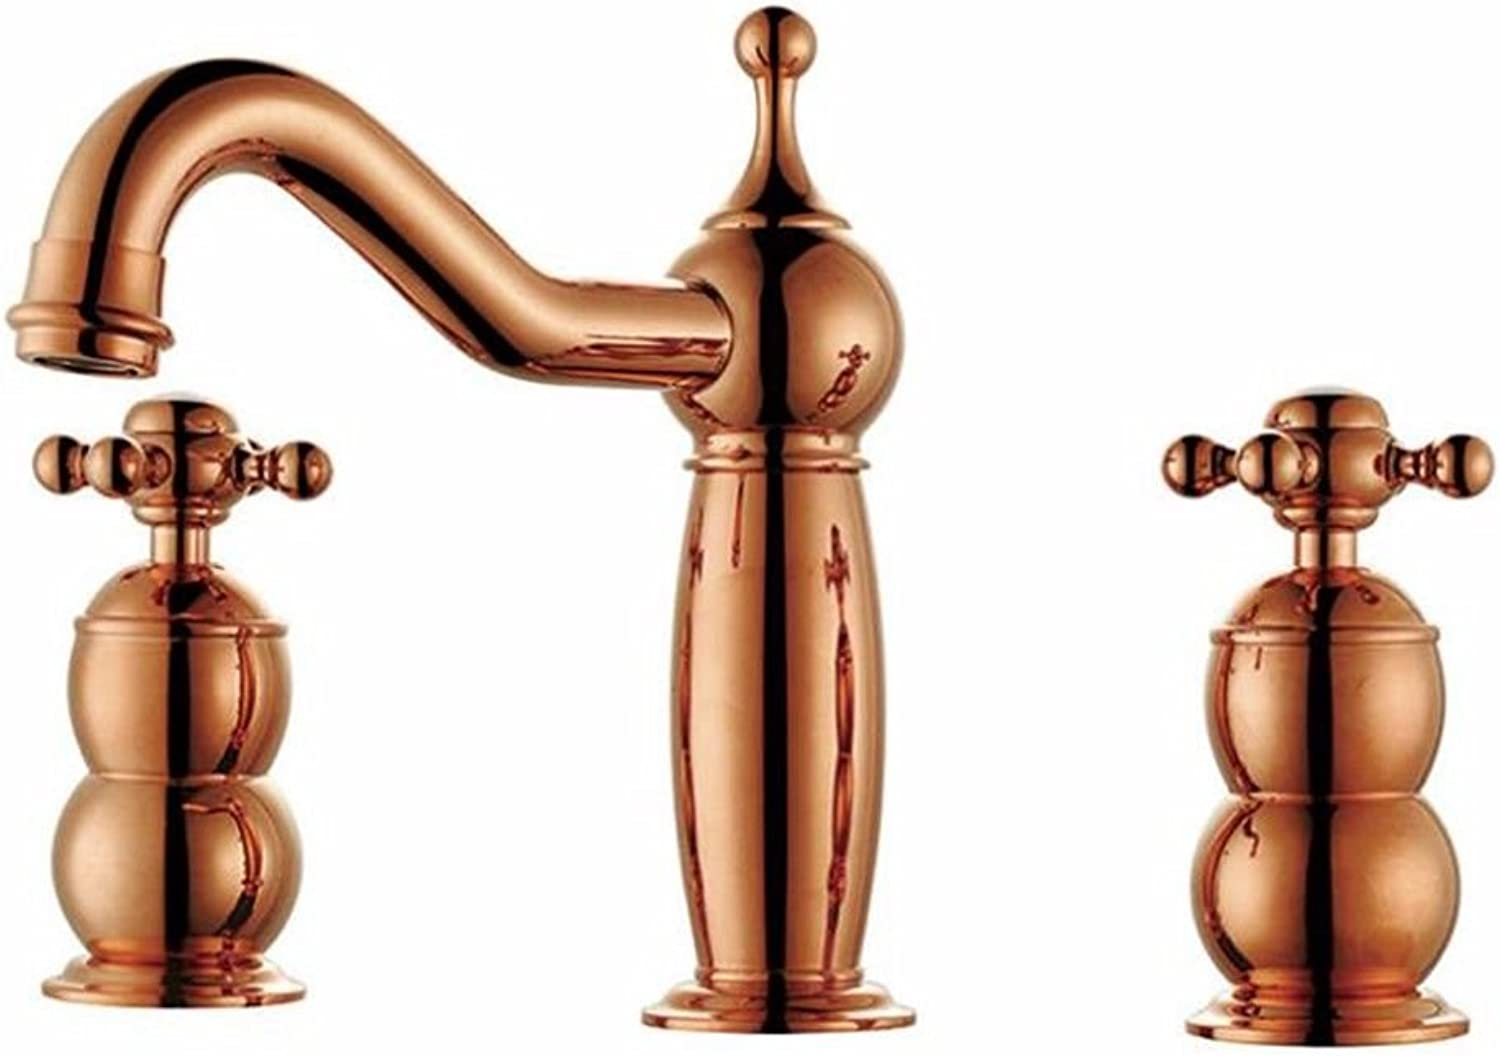 Lpophy Bathroom Sink Mixer Taps Faucet Bath Waterfall Cold and Hot Water Tap for Washroom Bathroom and Kitchen Copper gold A